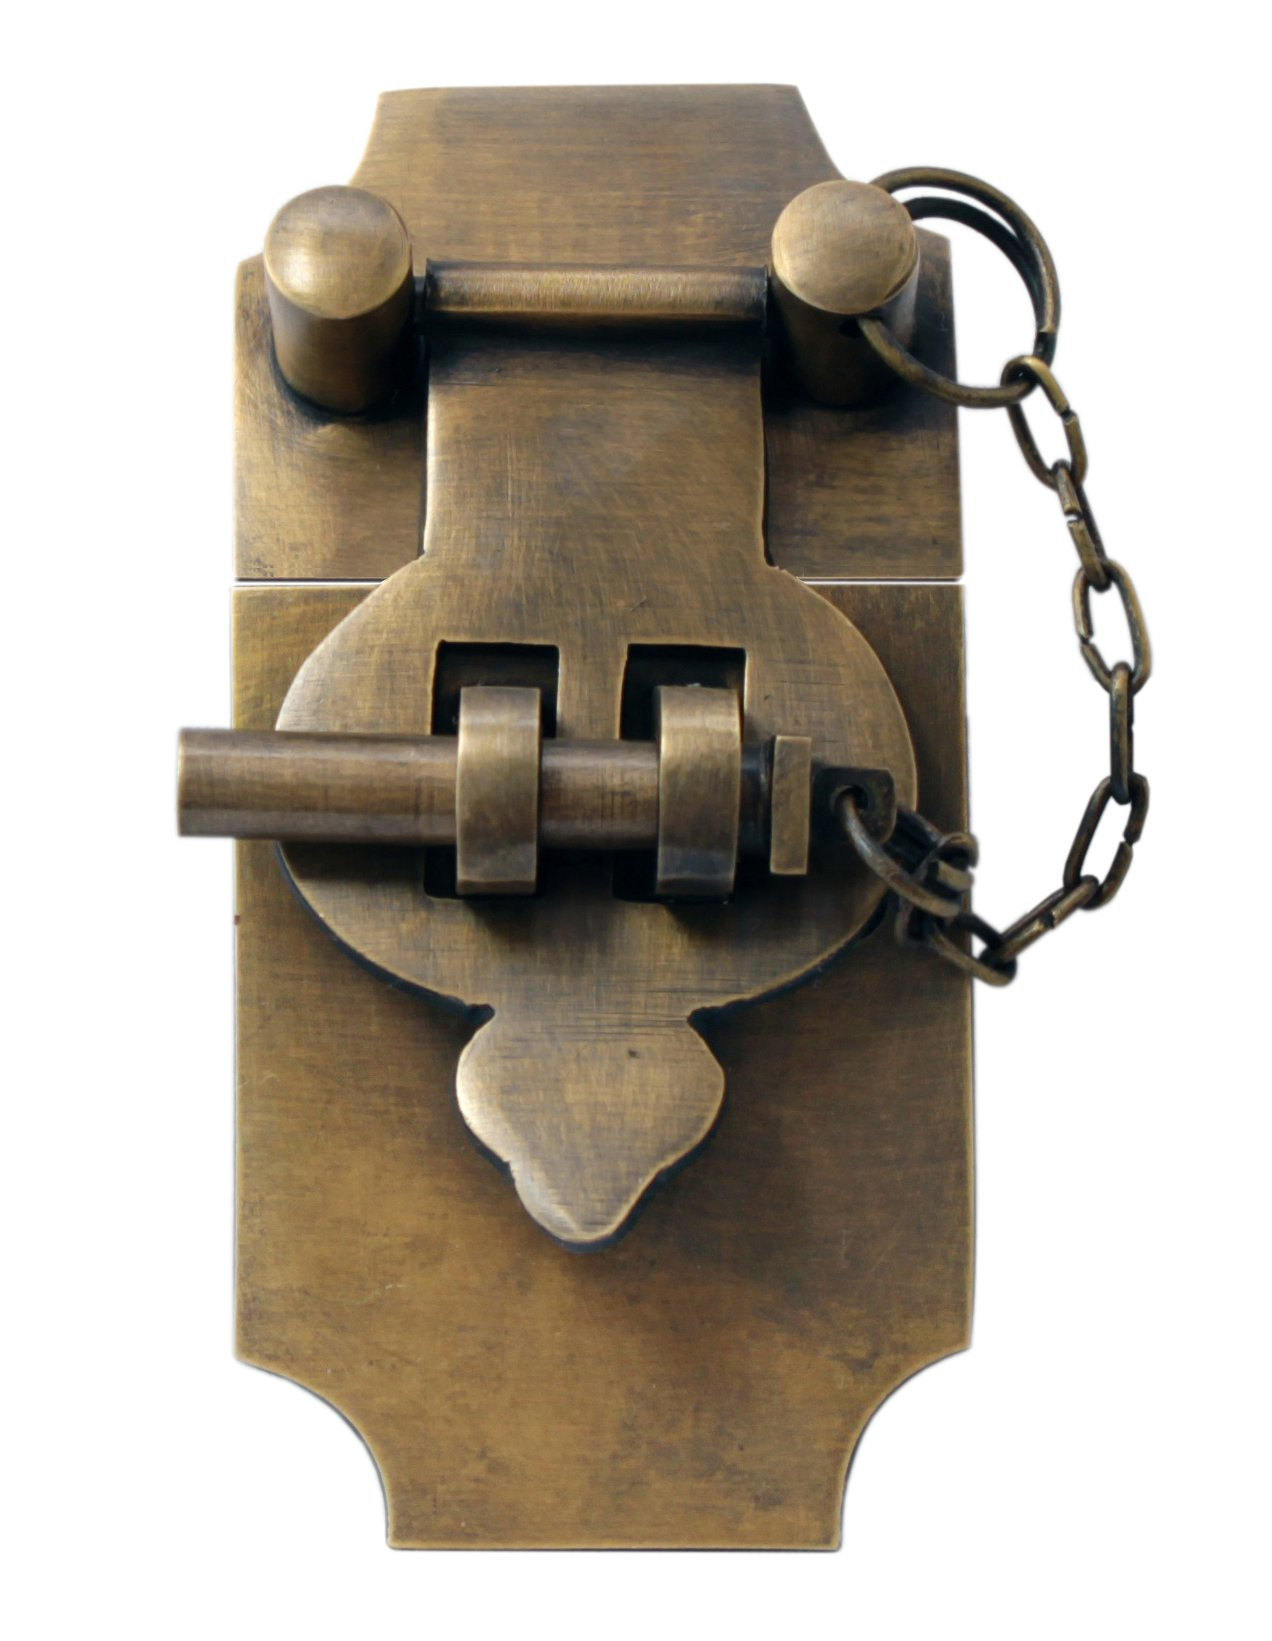 4 Inch Large Antique Style Trunk Hasp with Chain Pin by Nesha